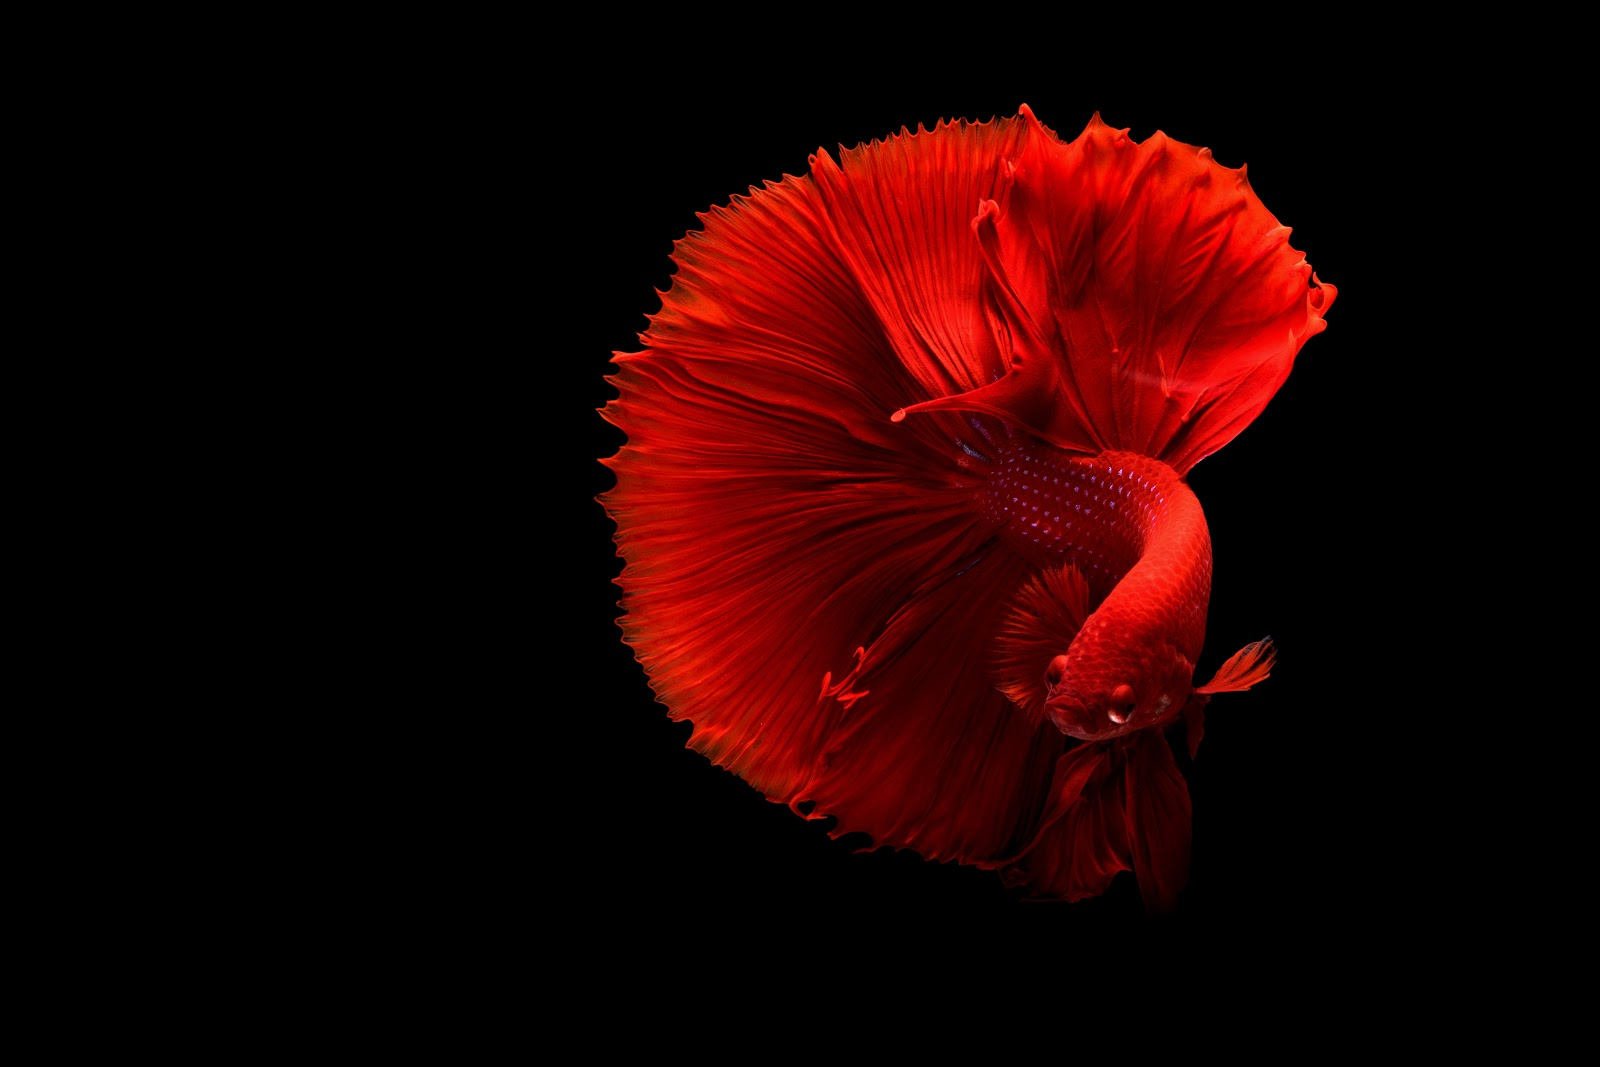 close-up-of-fish-over-black-background-pictures